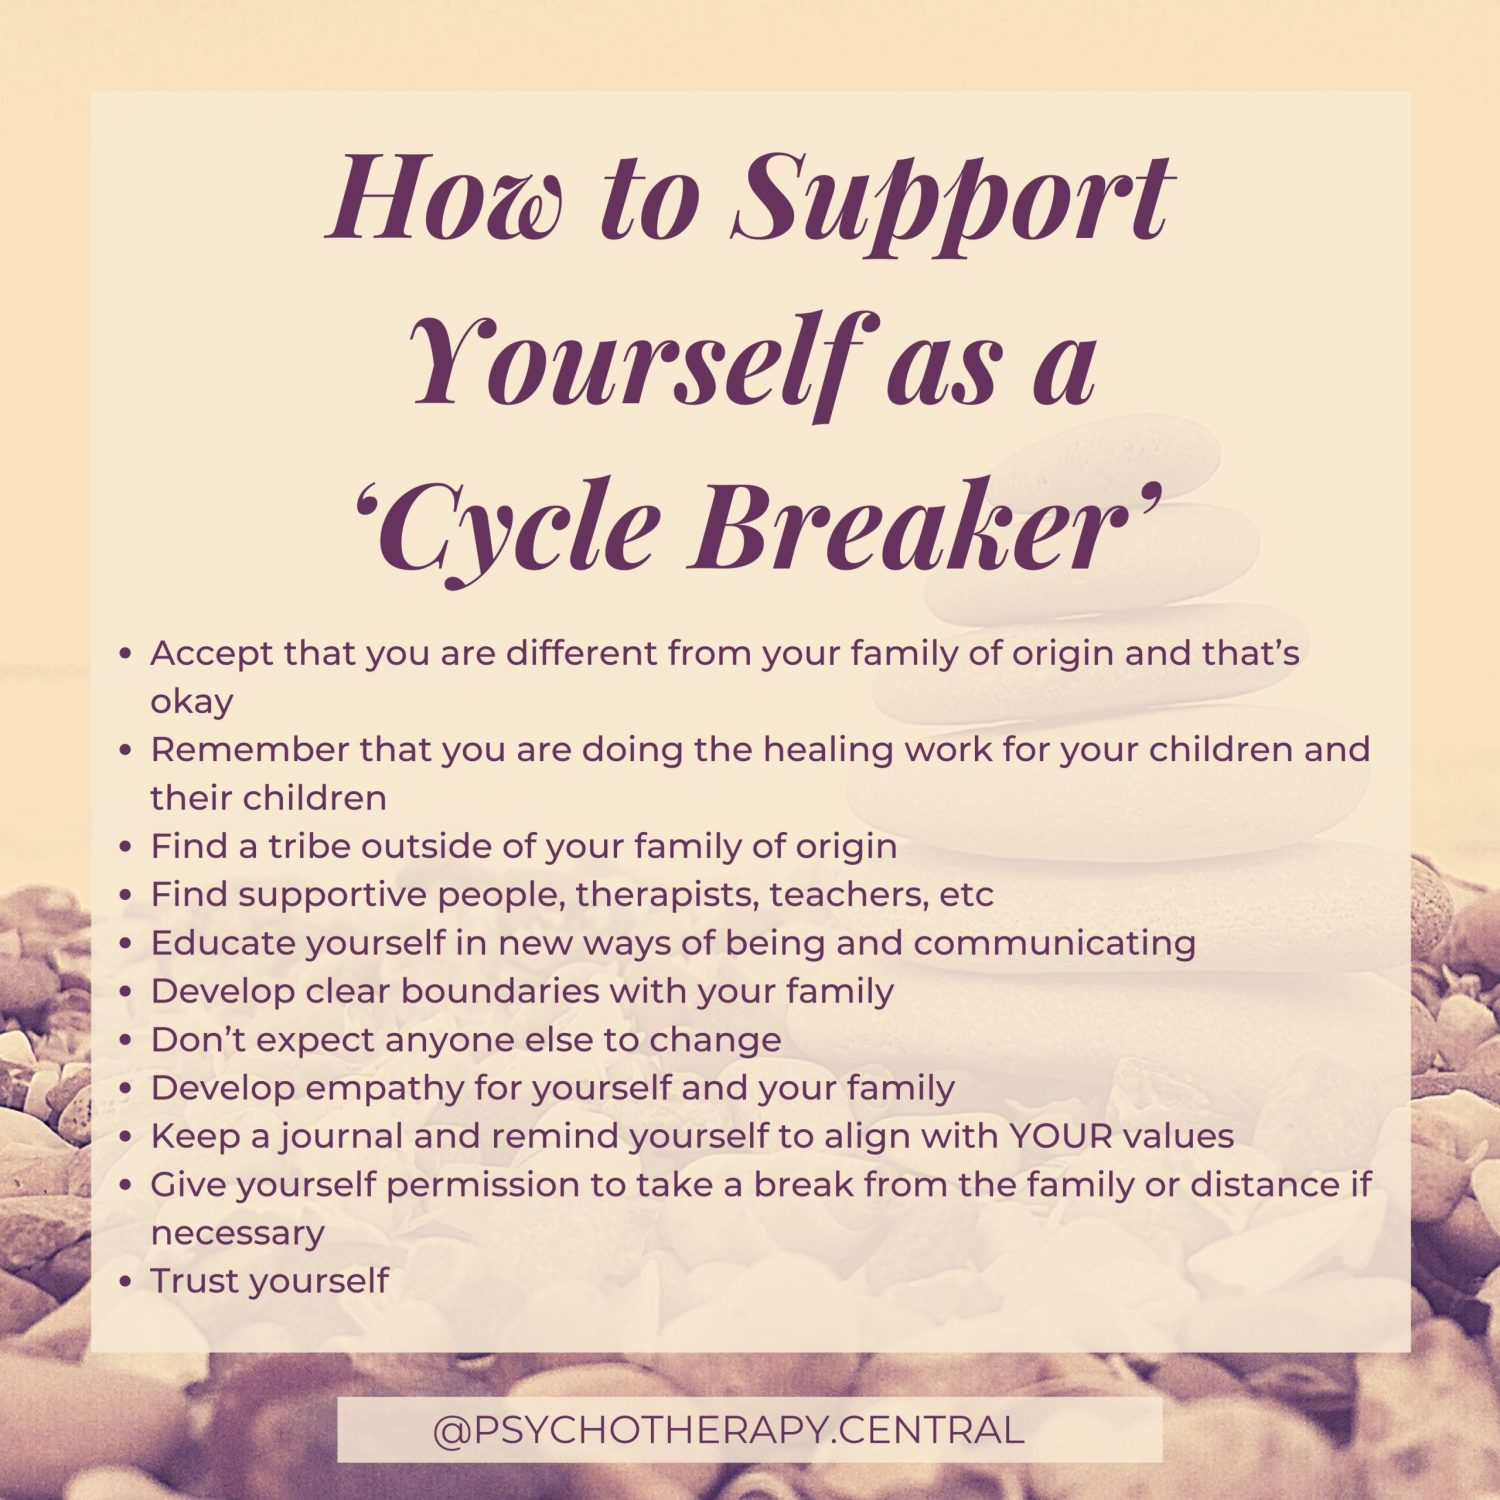 How to Support Yourself as a 'Cycle Breaker'